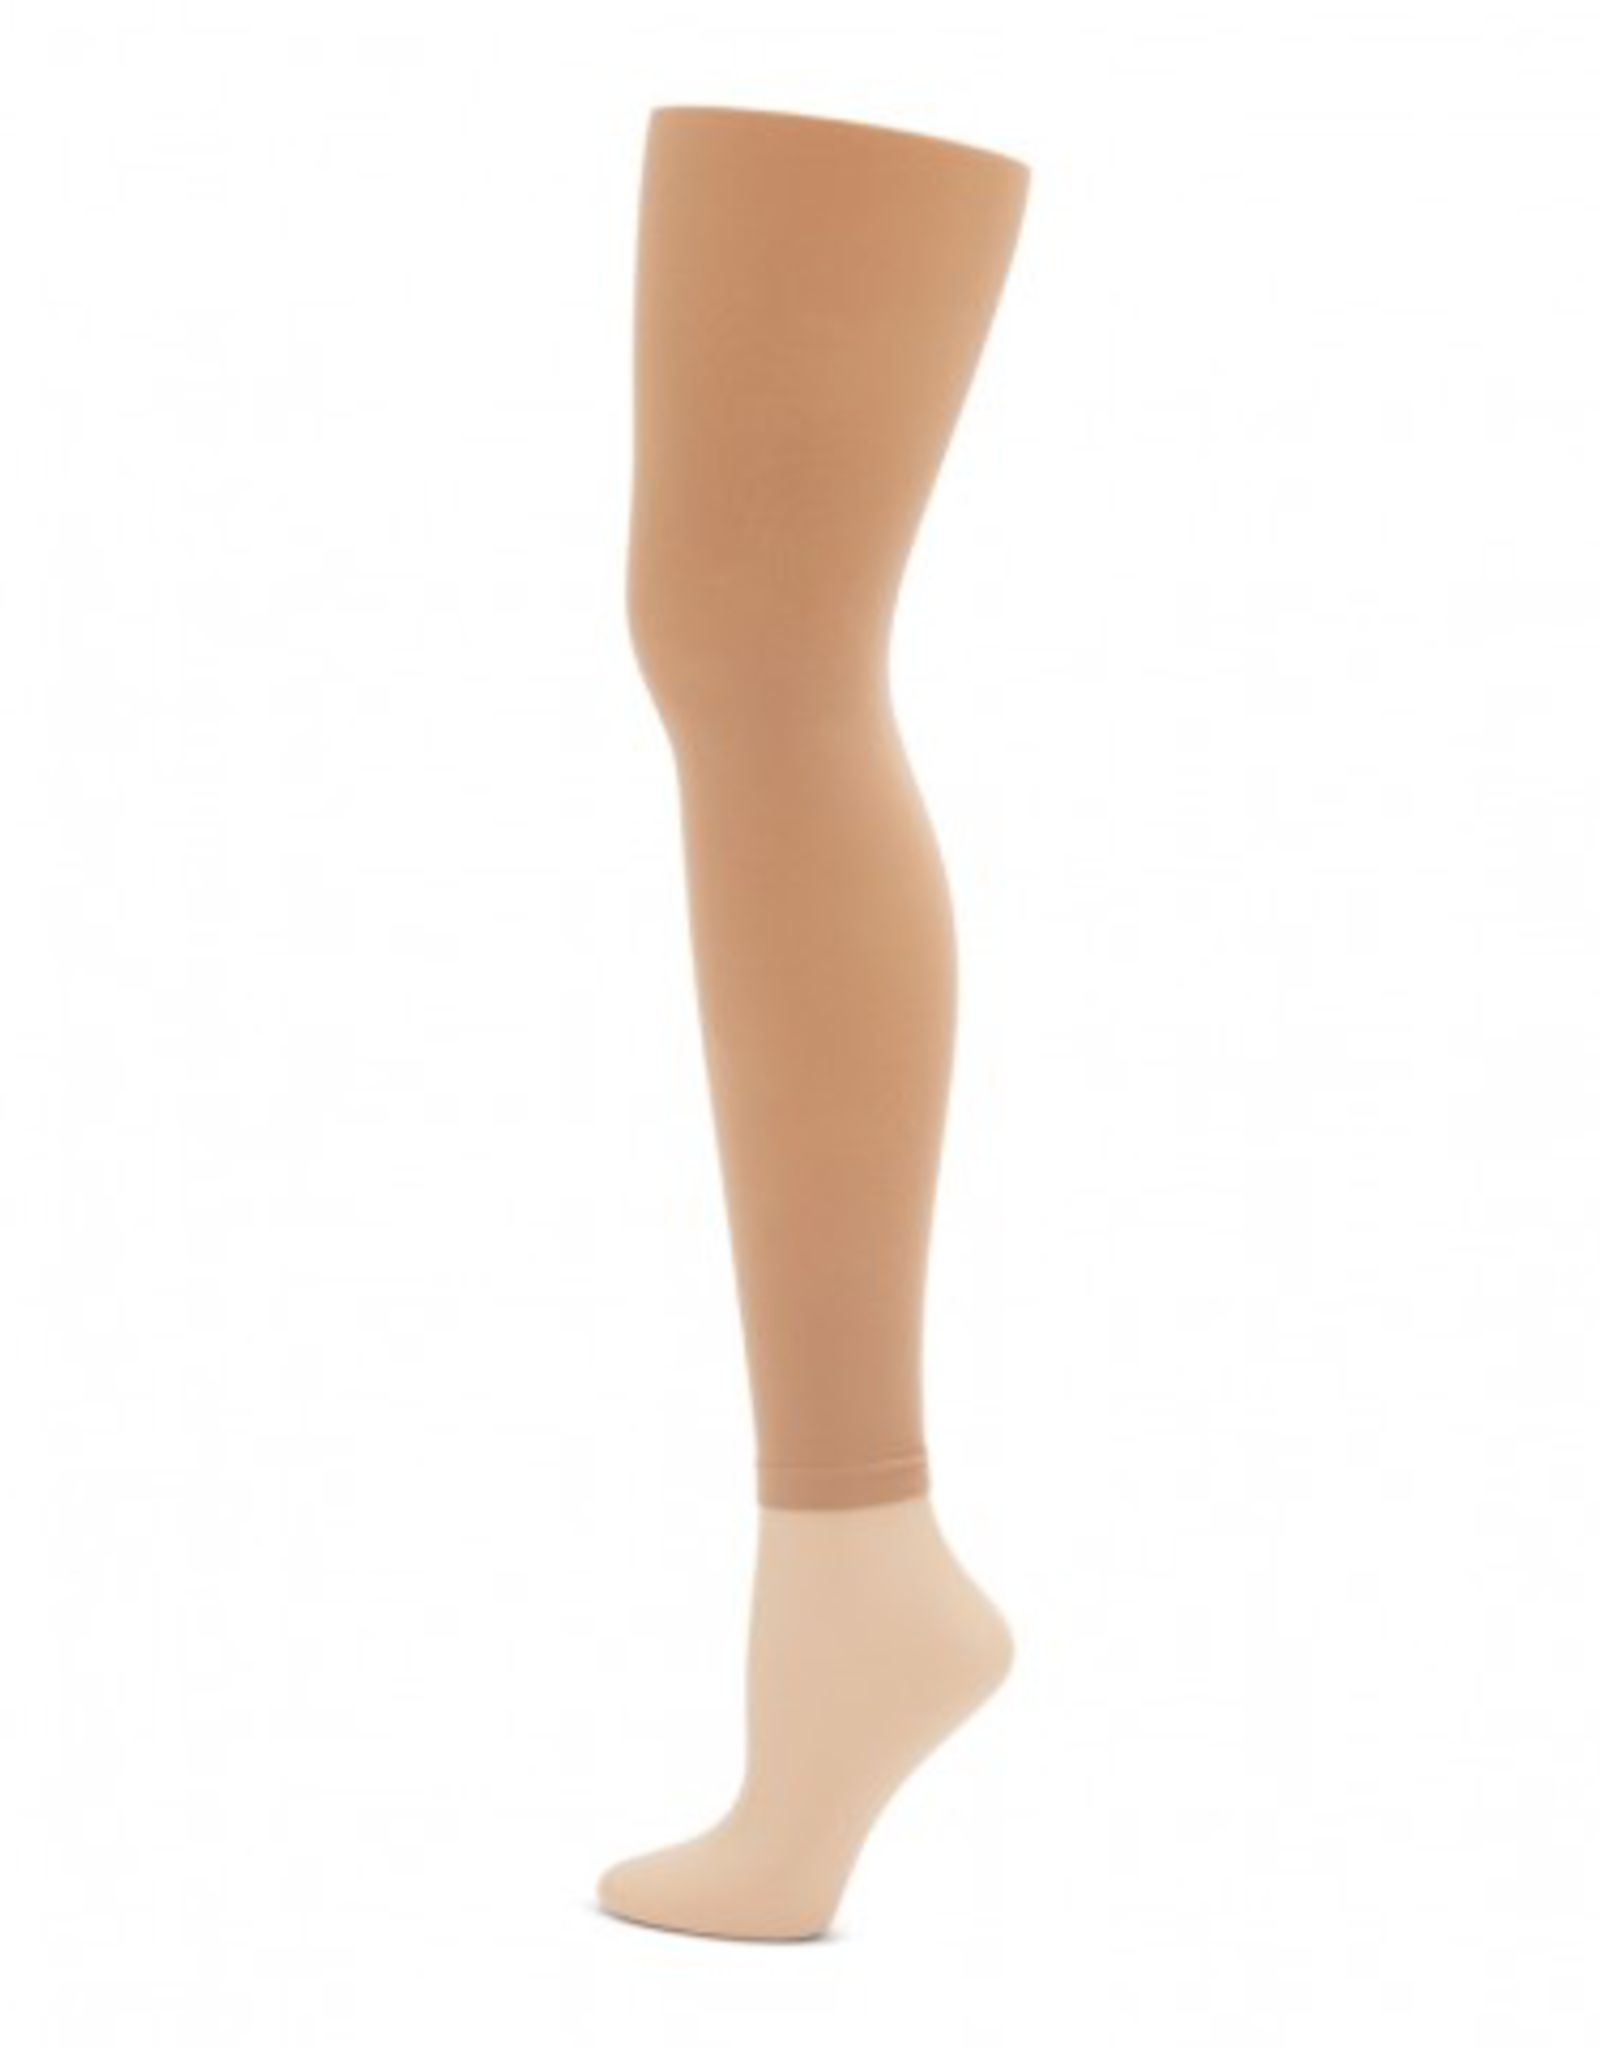 Capezio 1917 Footless Tights with Self Knit Waistband Adult